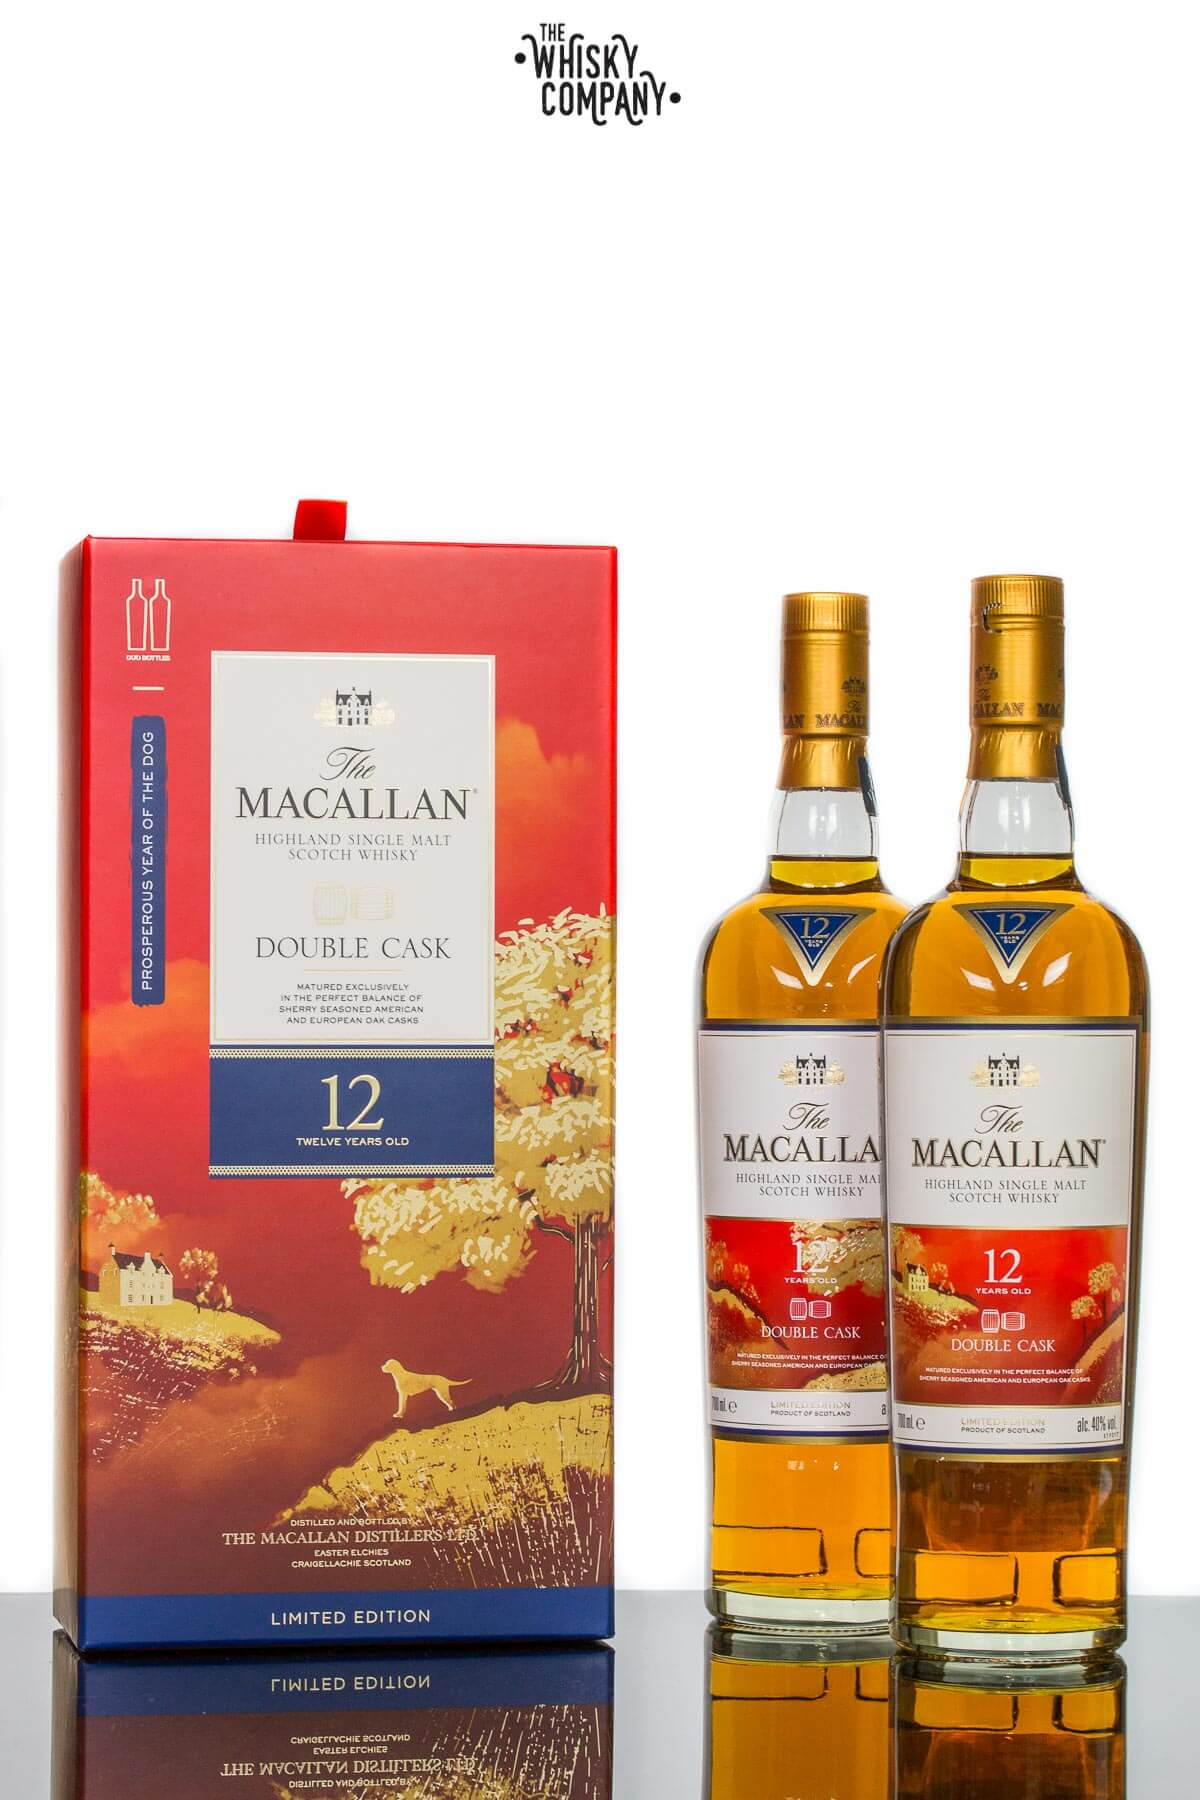 The Macallan 12 Years Old Year Of The Dog Single Malt Scotch Whisky